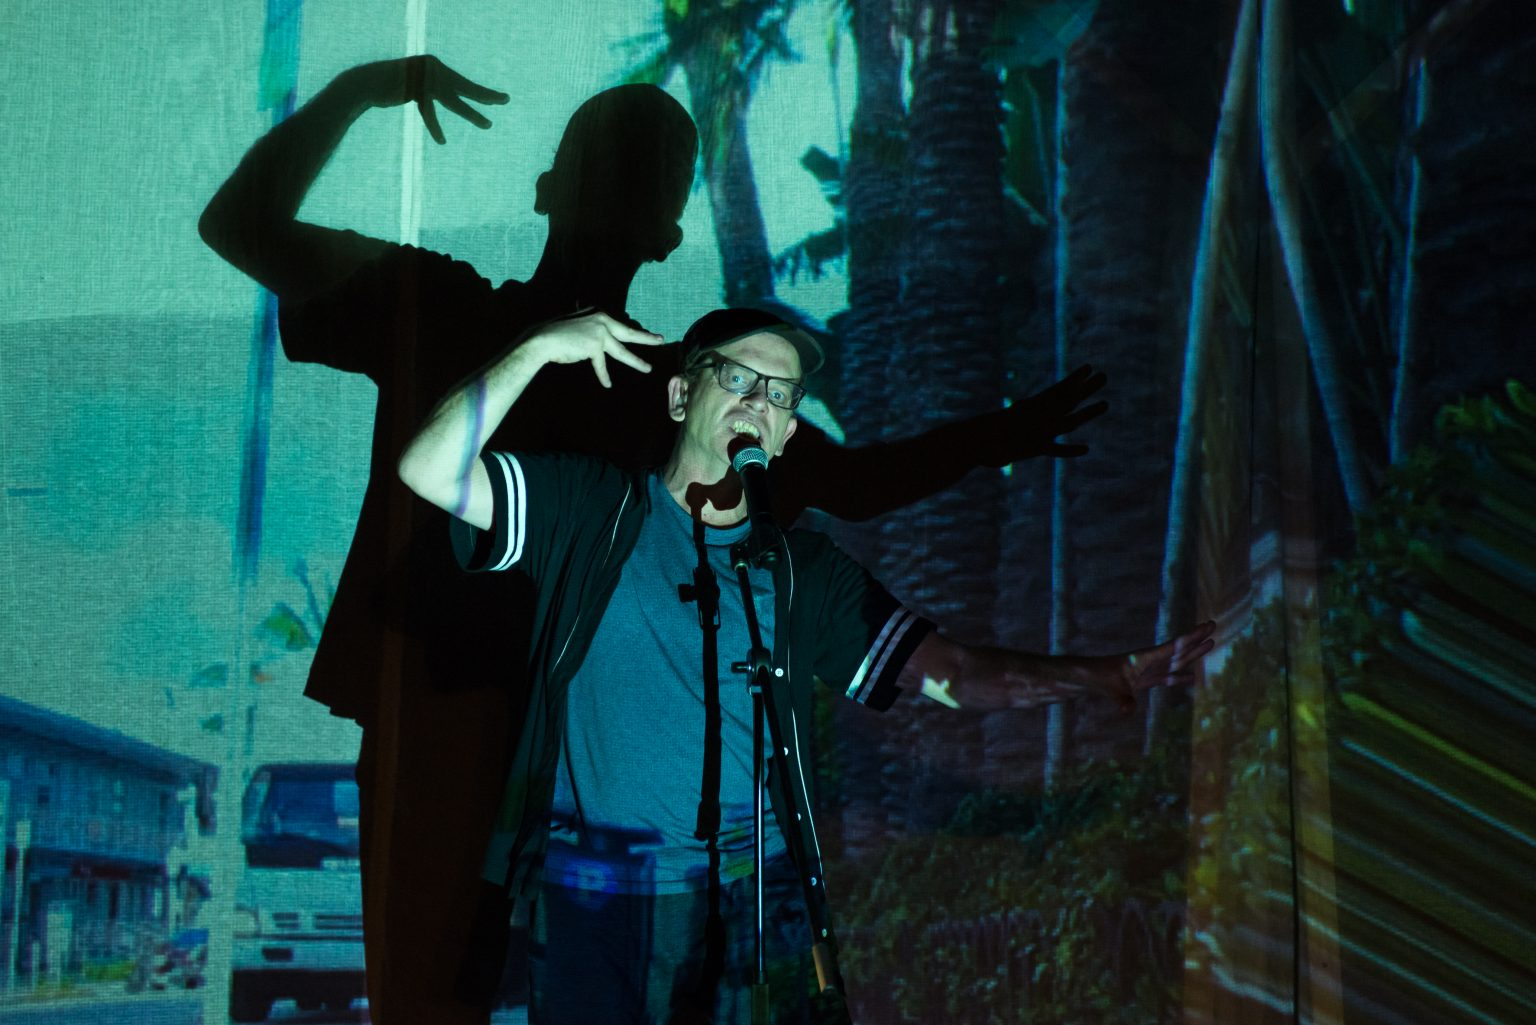 A man signing and talking to a microphone on stage. An image is projected onto him and the back wall, creating dramatic shadows.